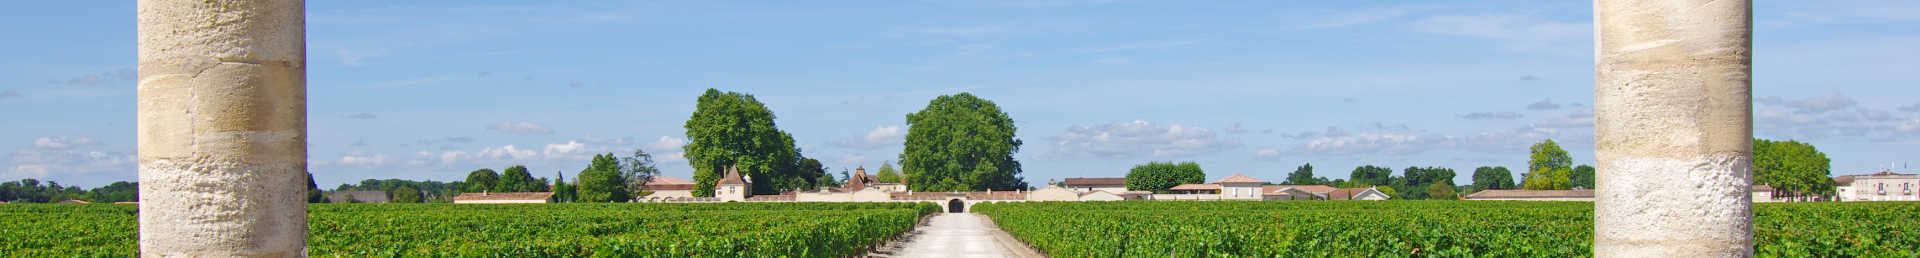 Image for Pessac-Leognan Wine Bordeaux, France content section